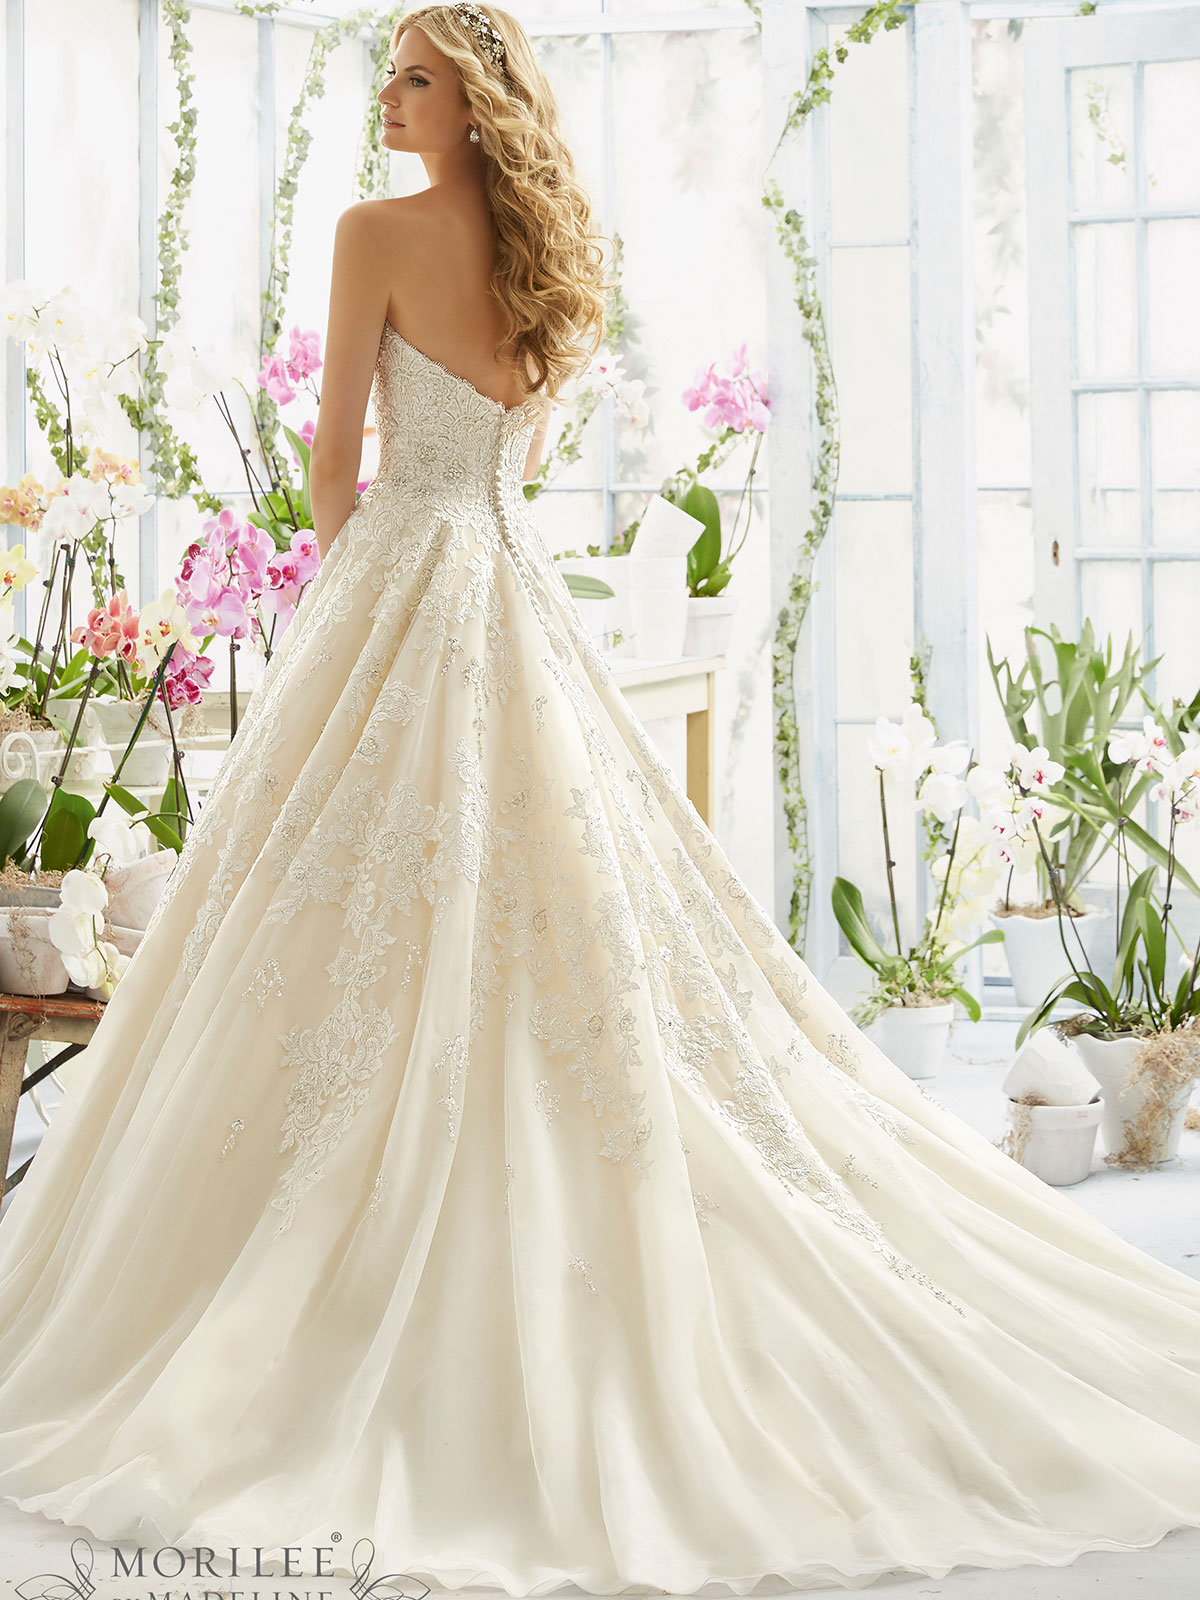 Mori Lee 2808 Sweetheart Ball Gown Bridal Dress Dimitradesigns